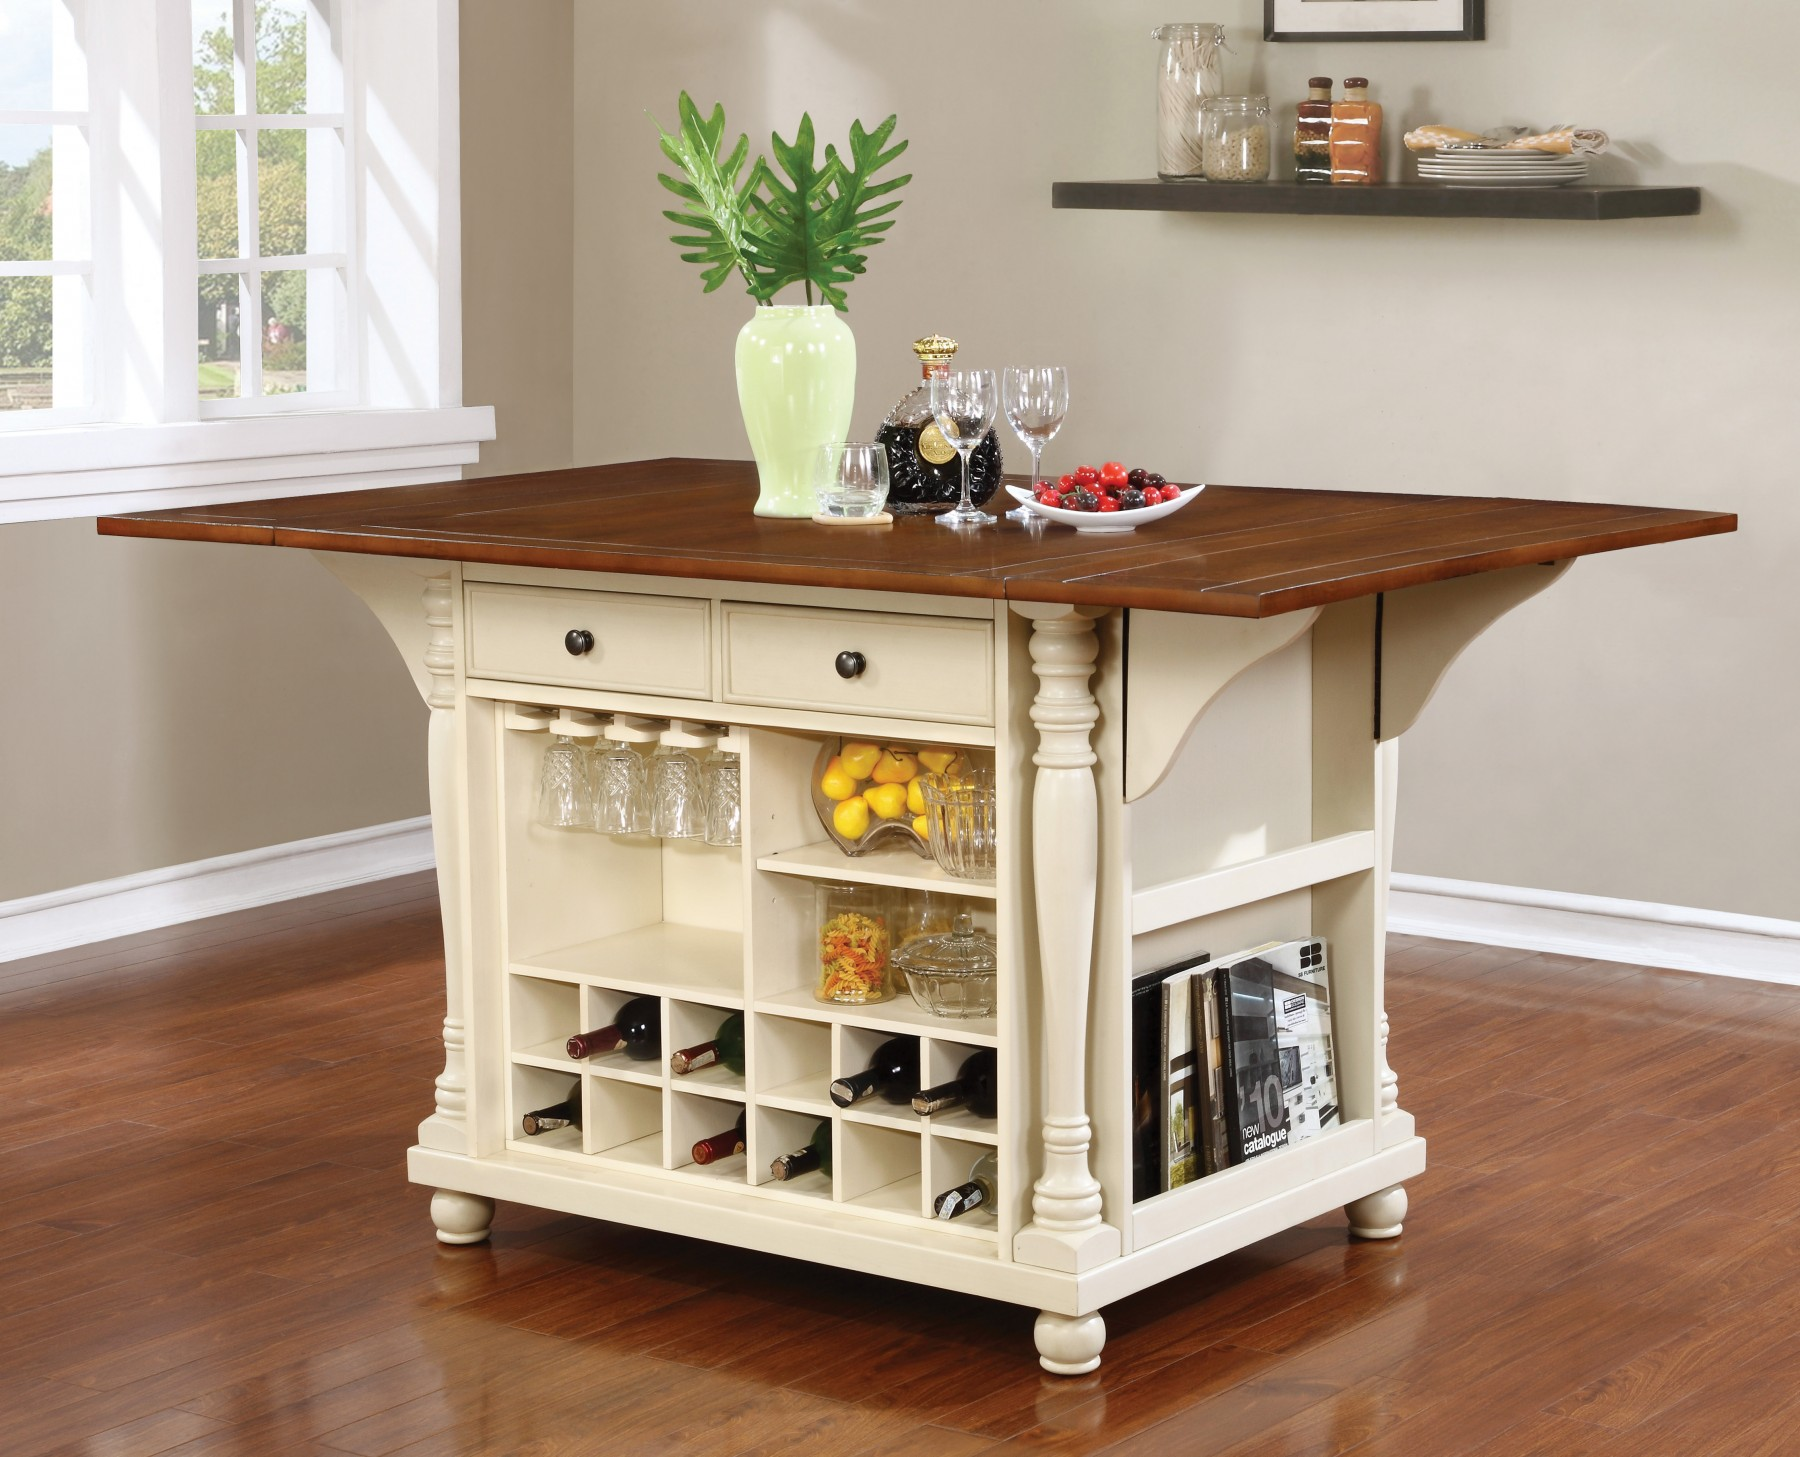 cherry kitchen island cabinets tucson buttermilk and marjen of chicago the country cottage styling this large scale will give your home a custom feel at an affordable price spacious features tons